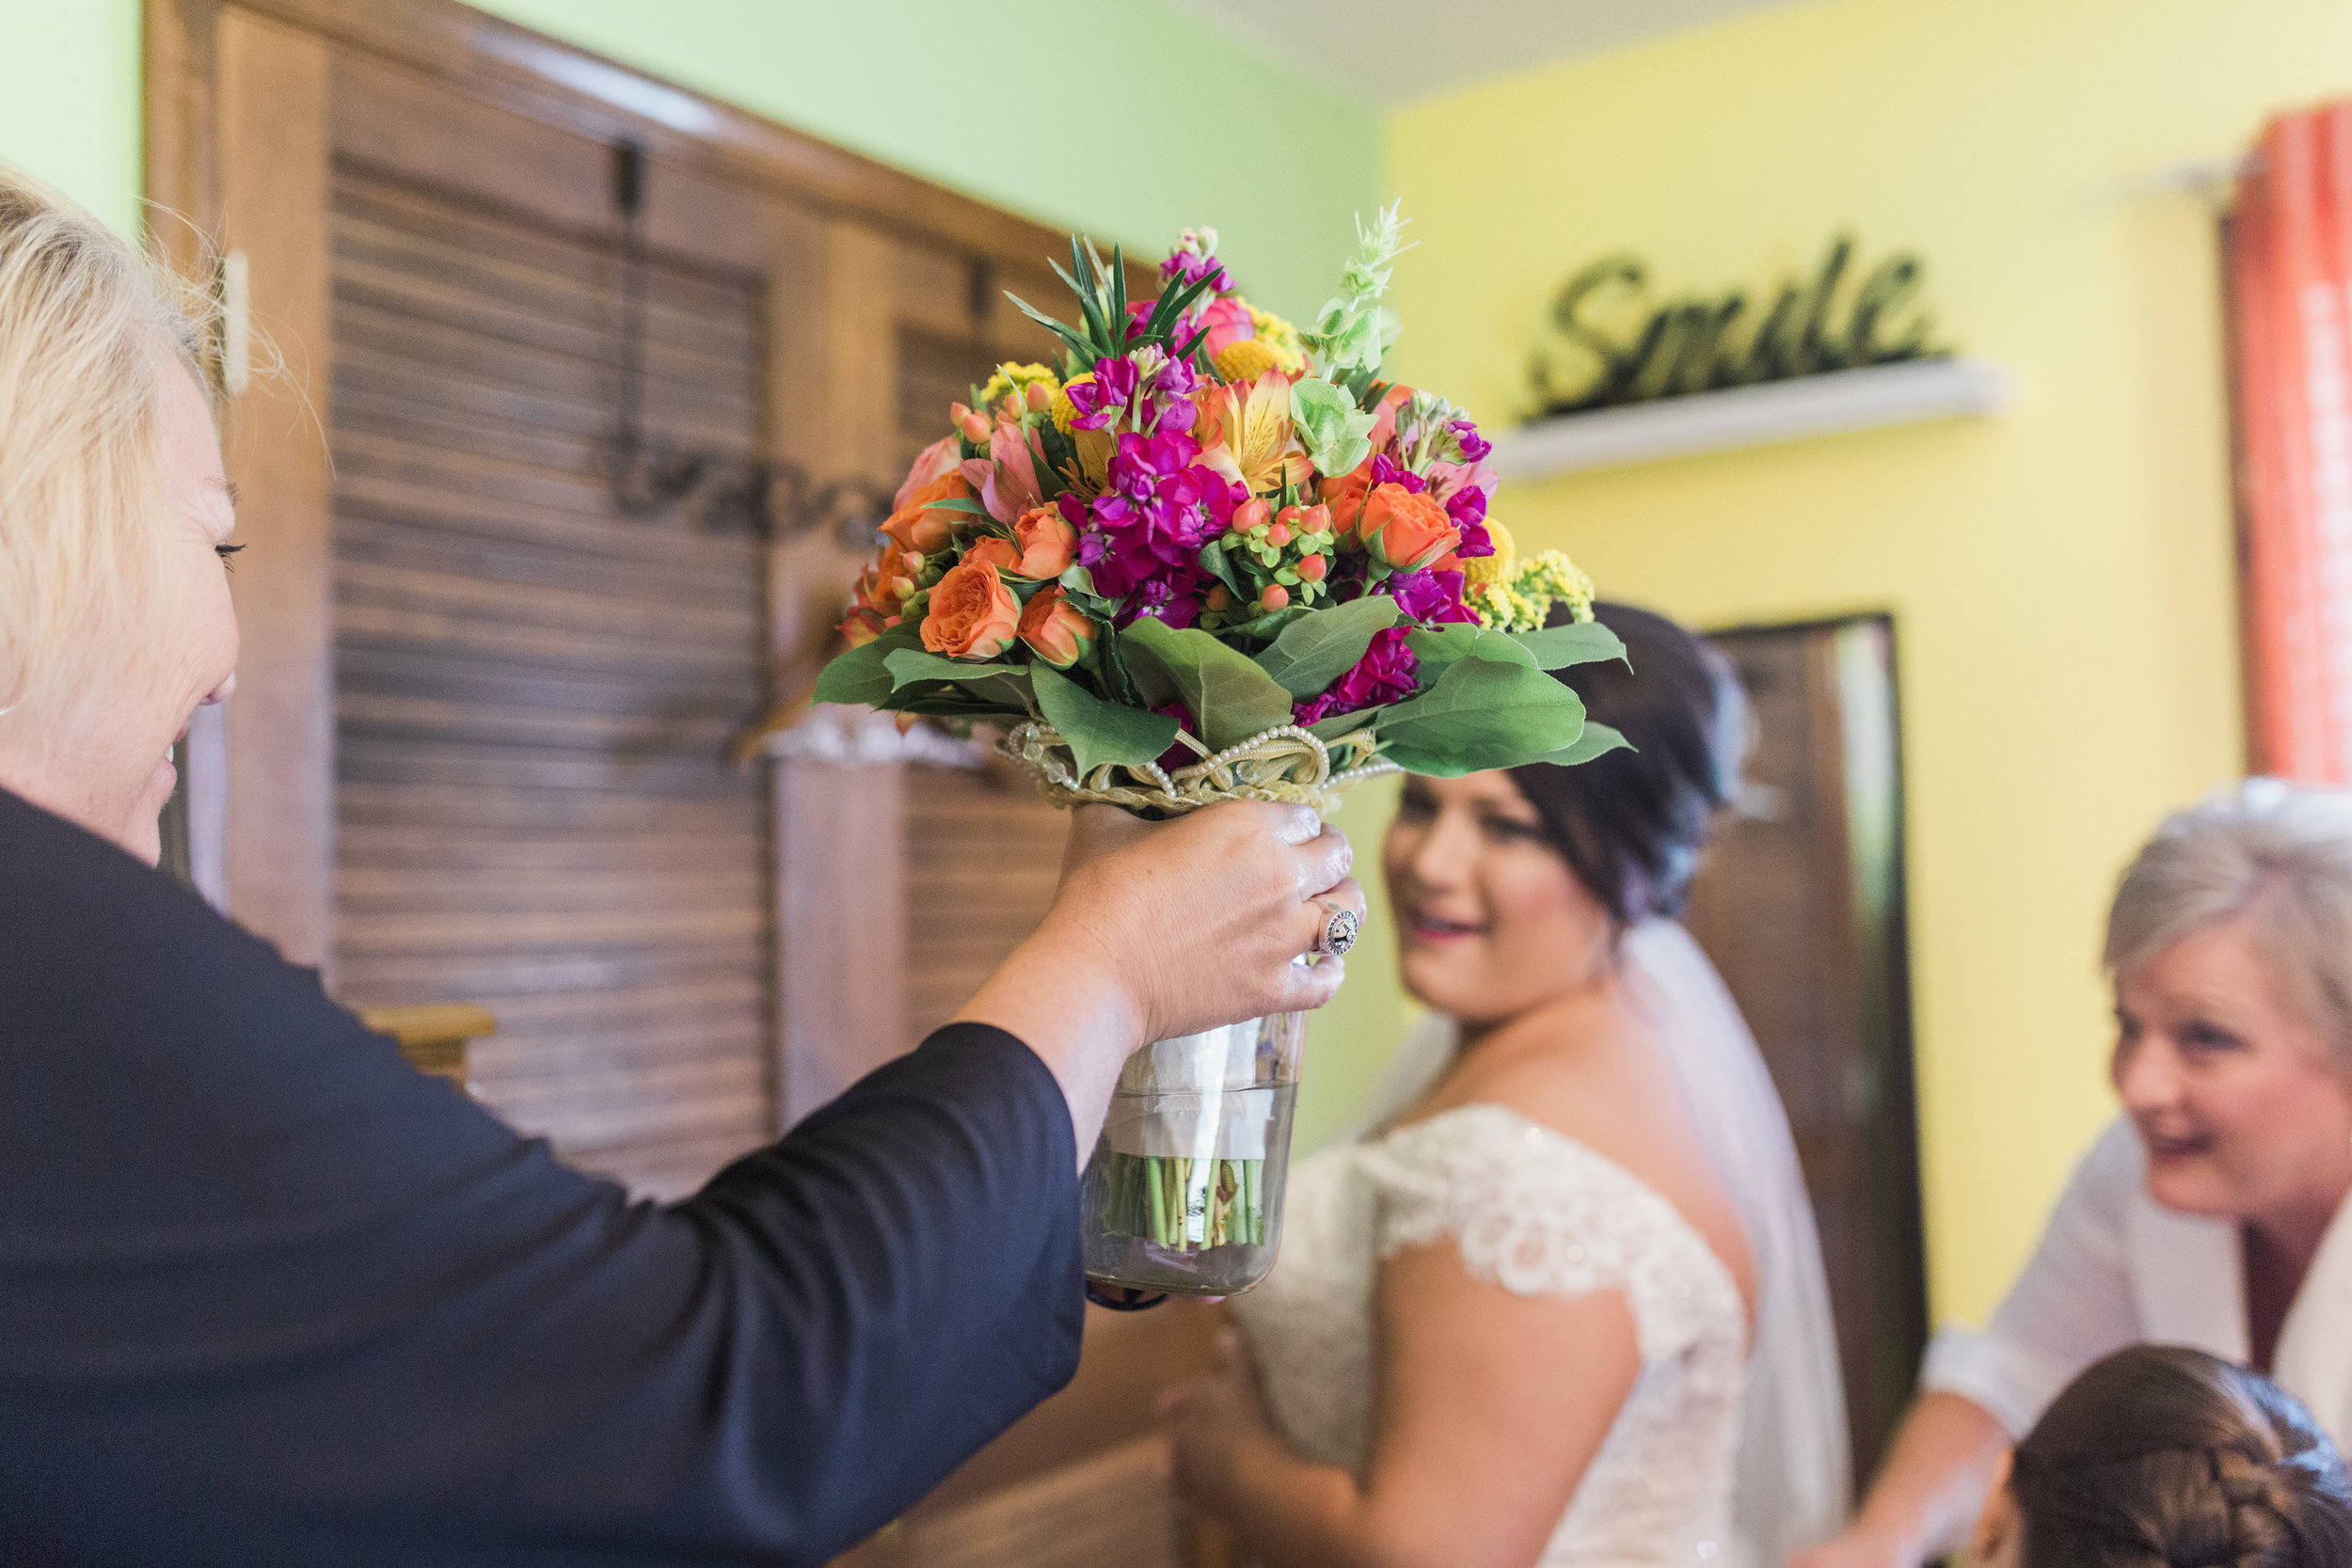 The bouquet base is a family heirloom and was a surprise to Holly.